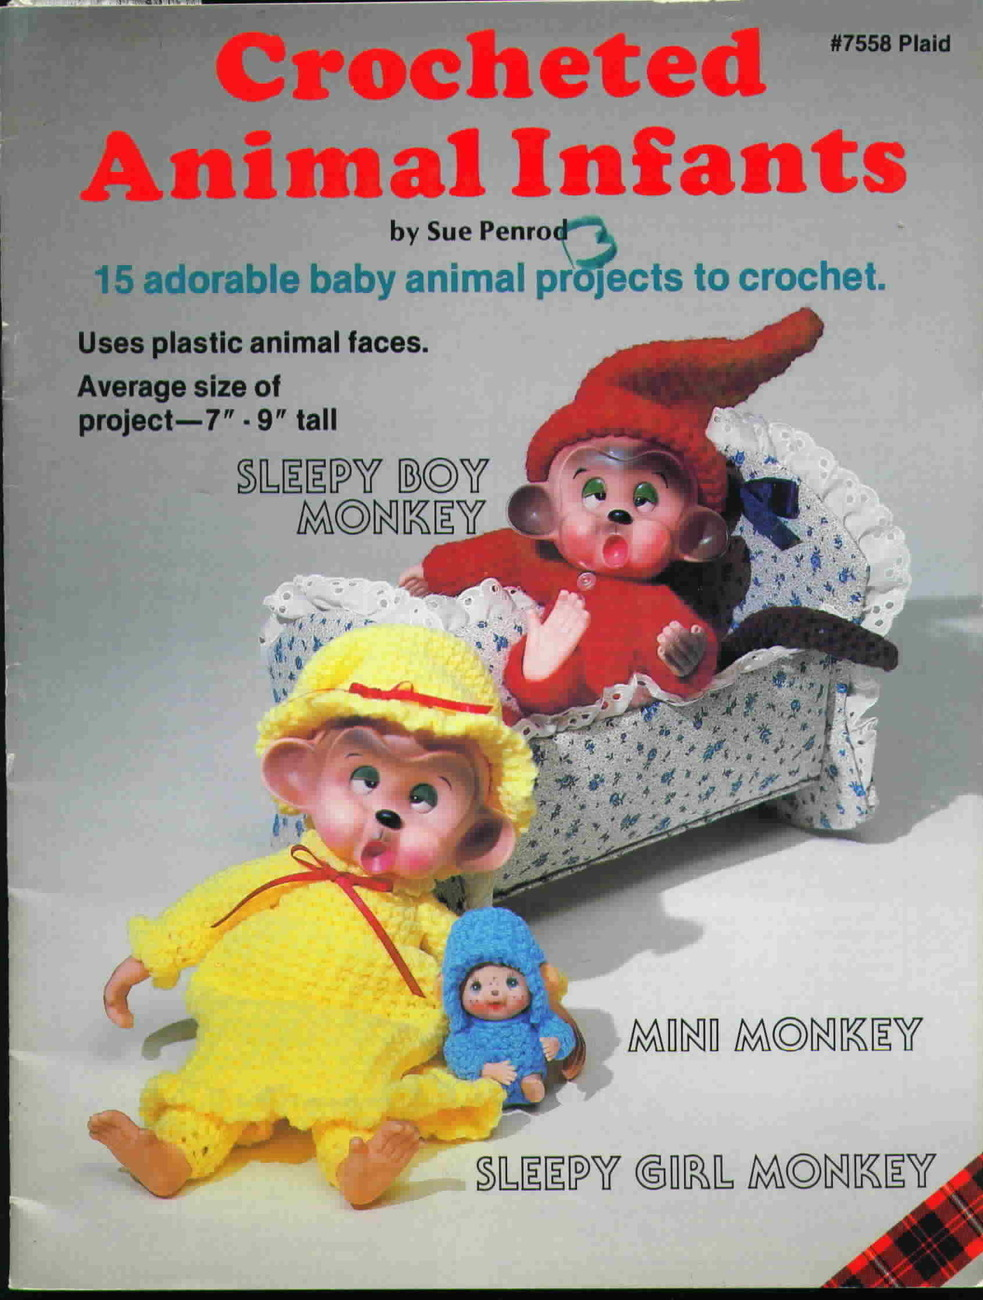 Crocheted animal infants from plaid